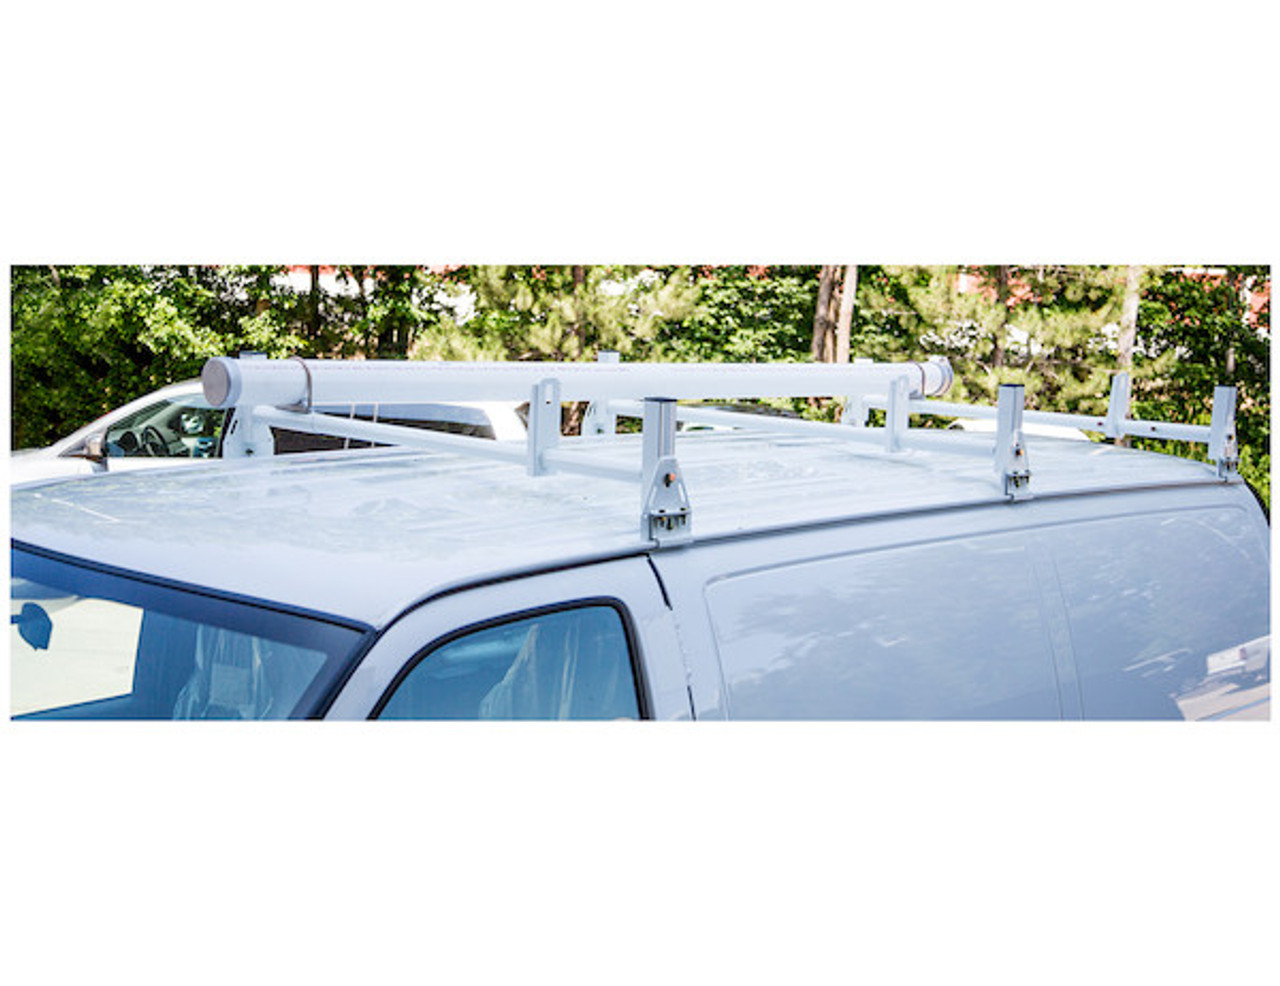 BUYERS 1501310 White Van Ladder Rack Set - 2 Bars And 2 Clamps Picture # 2 SOLD SEPARATELY